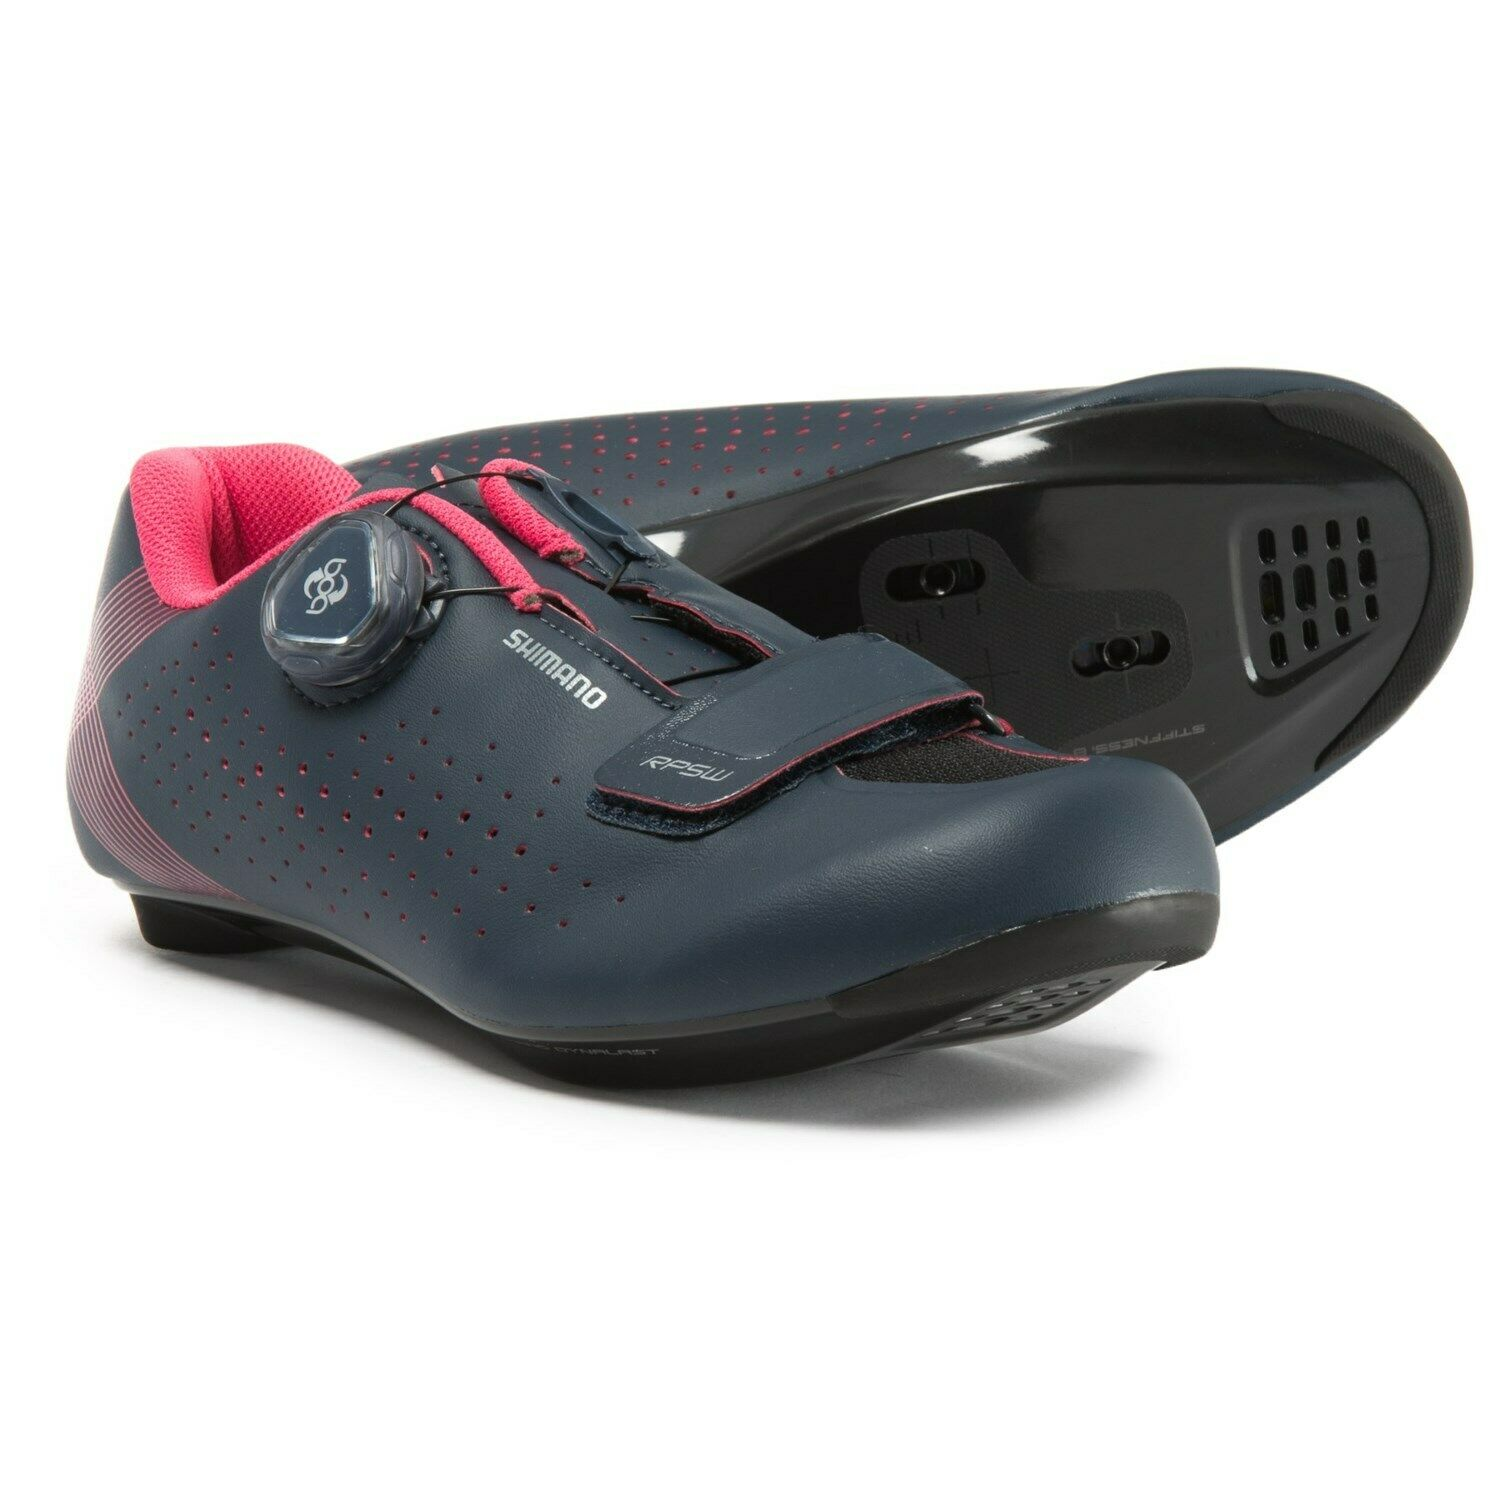 NWOB Shimano SH-RP5W Road Cycling shoes   3-Hole   Women's  Size 9.5  select from the newest brands like